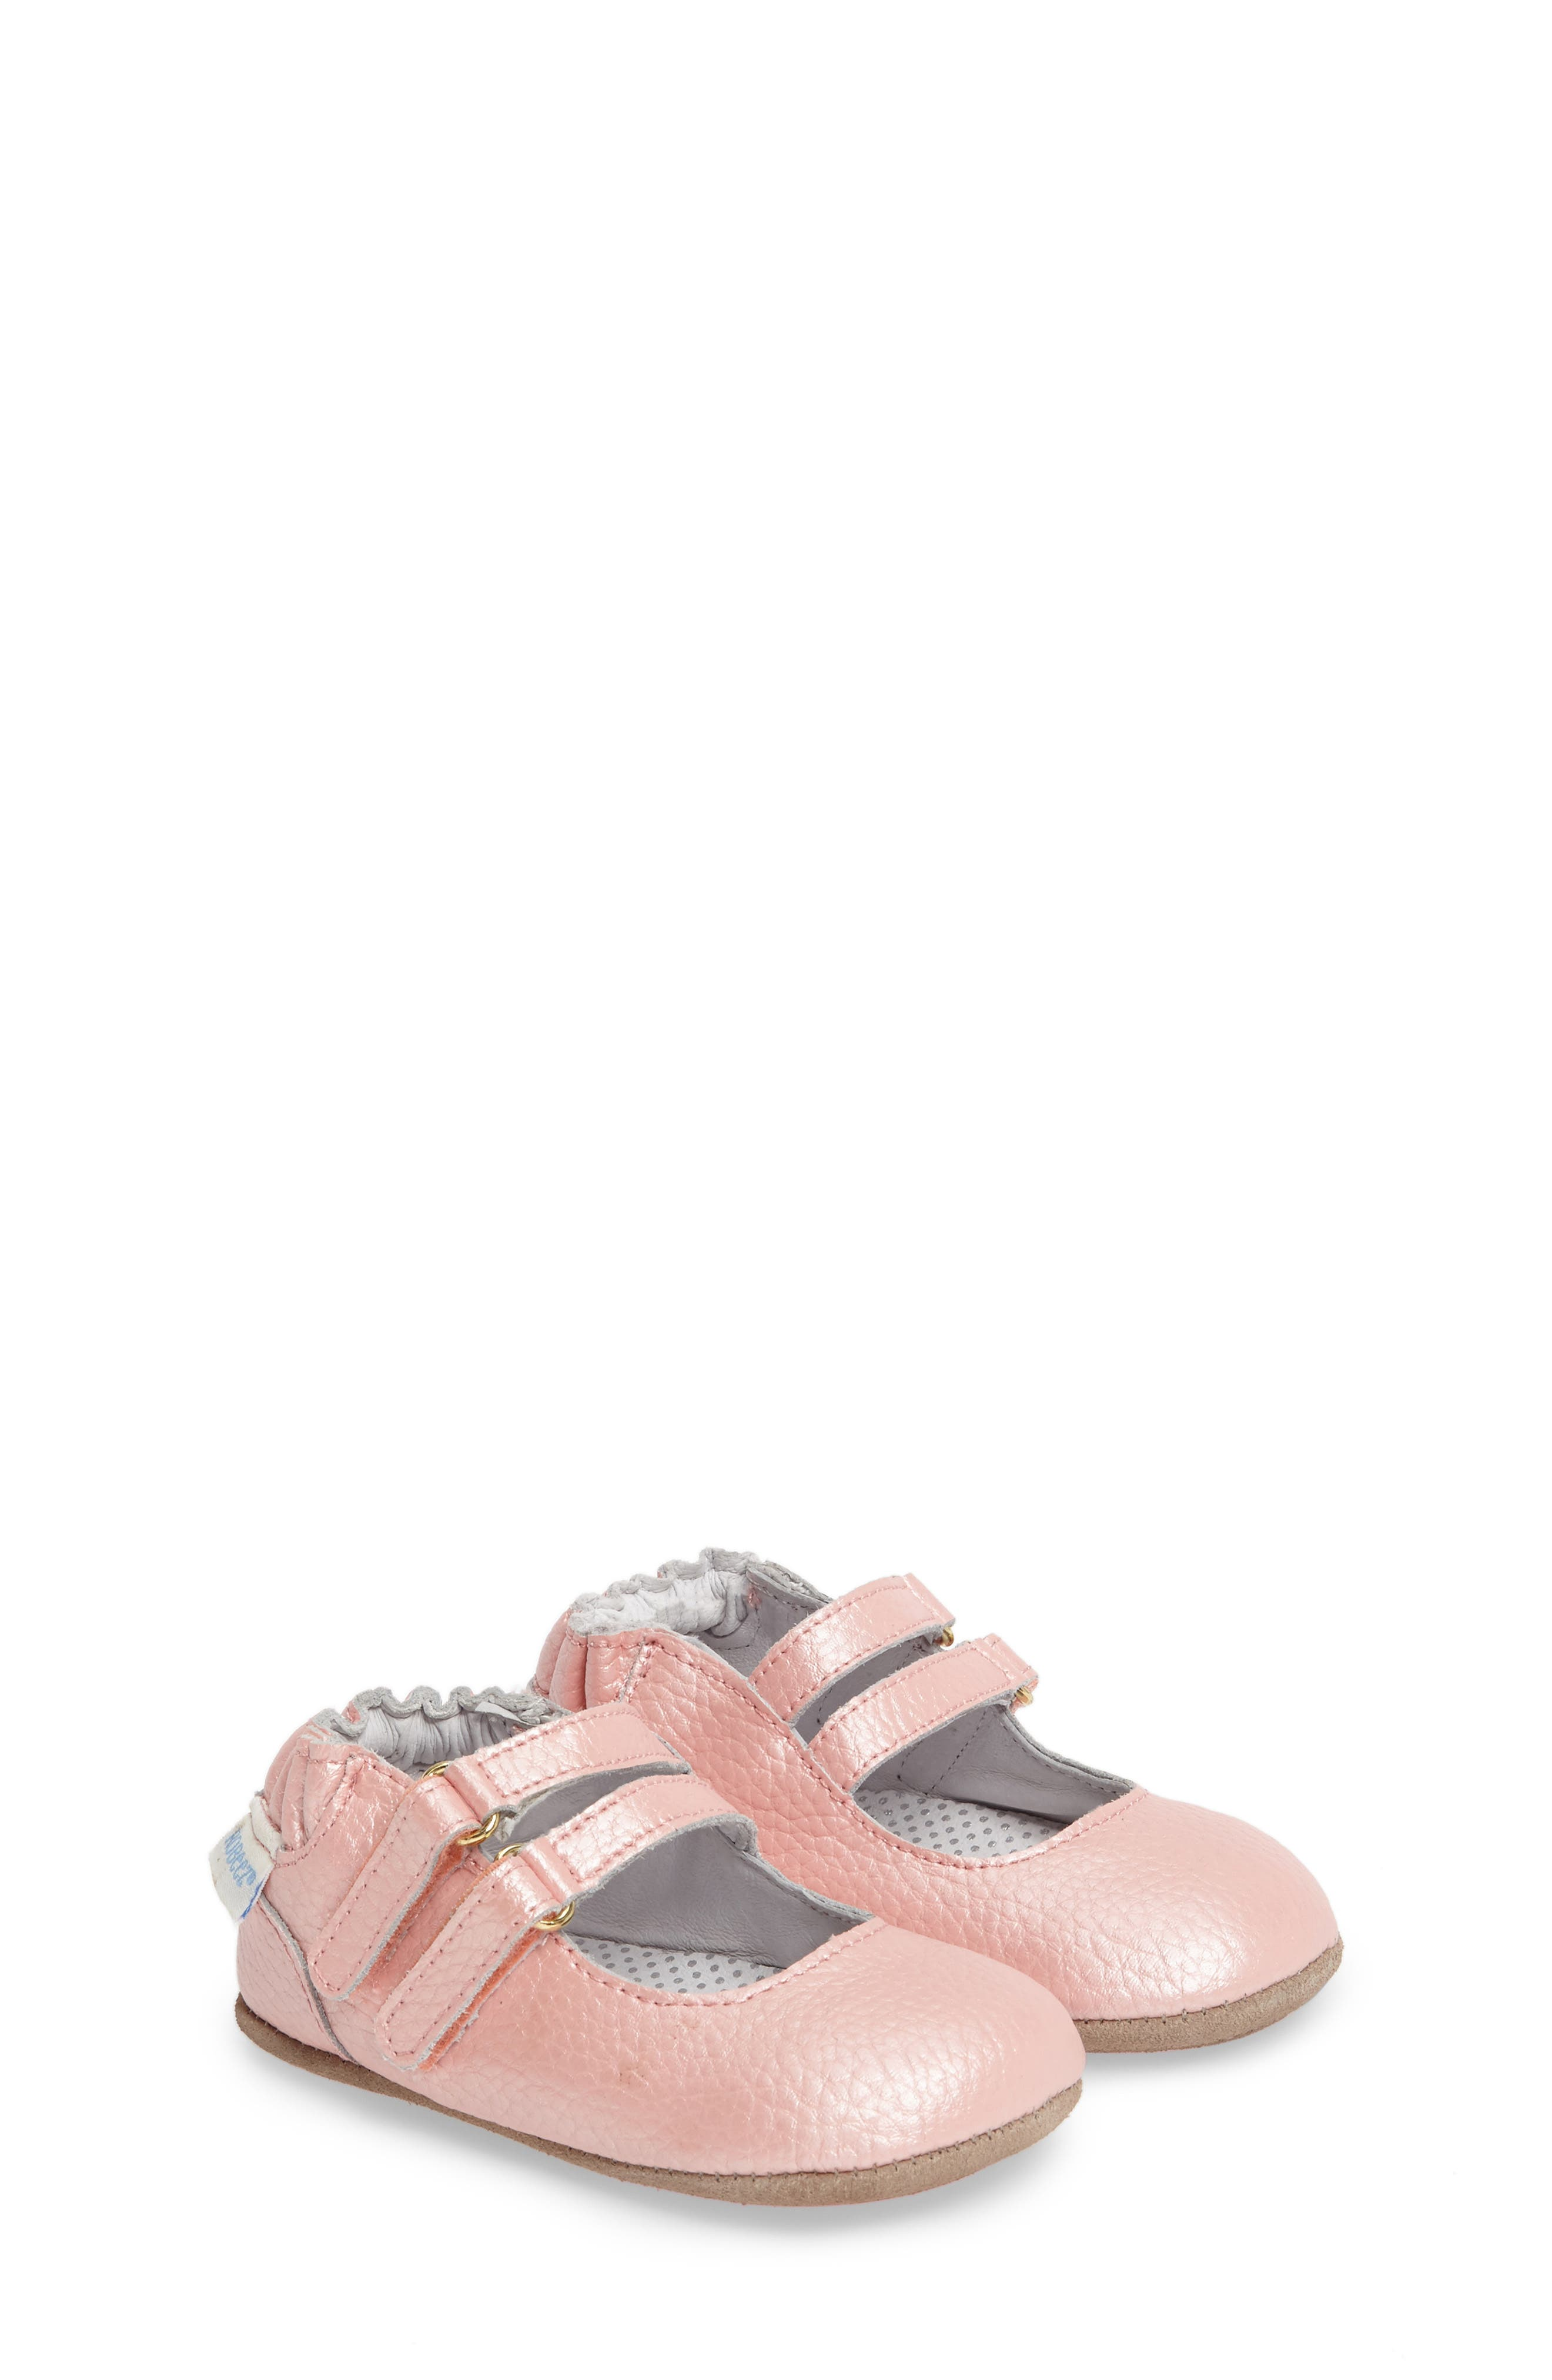 Rose Mary Jane Crib Shoe,                         Main,                         color, ROSE